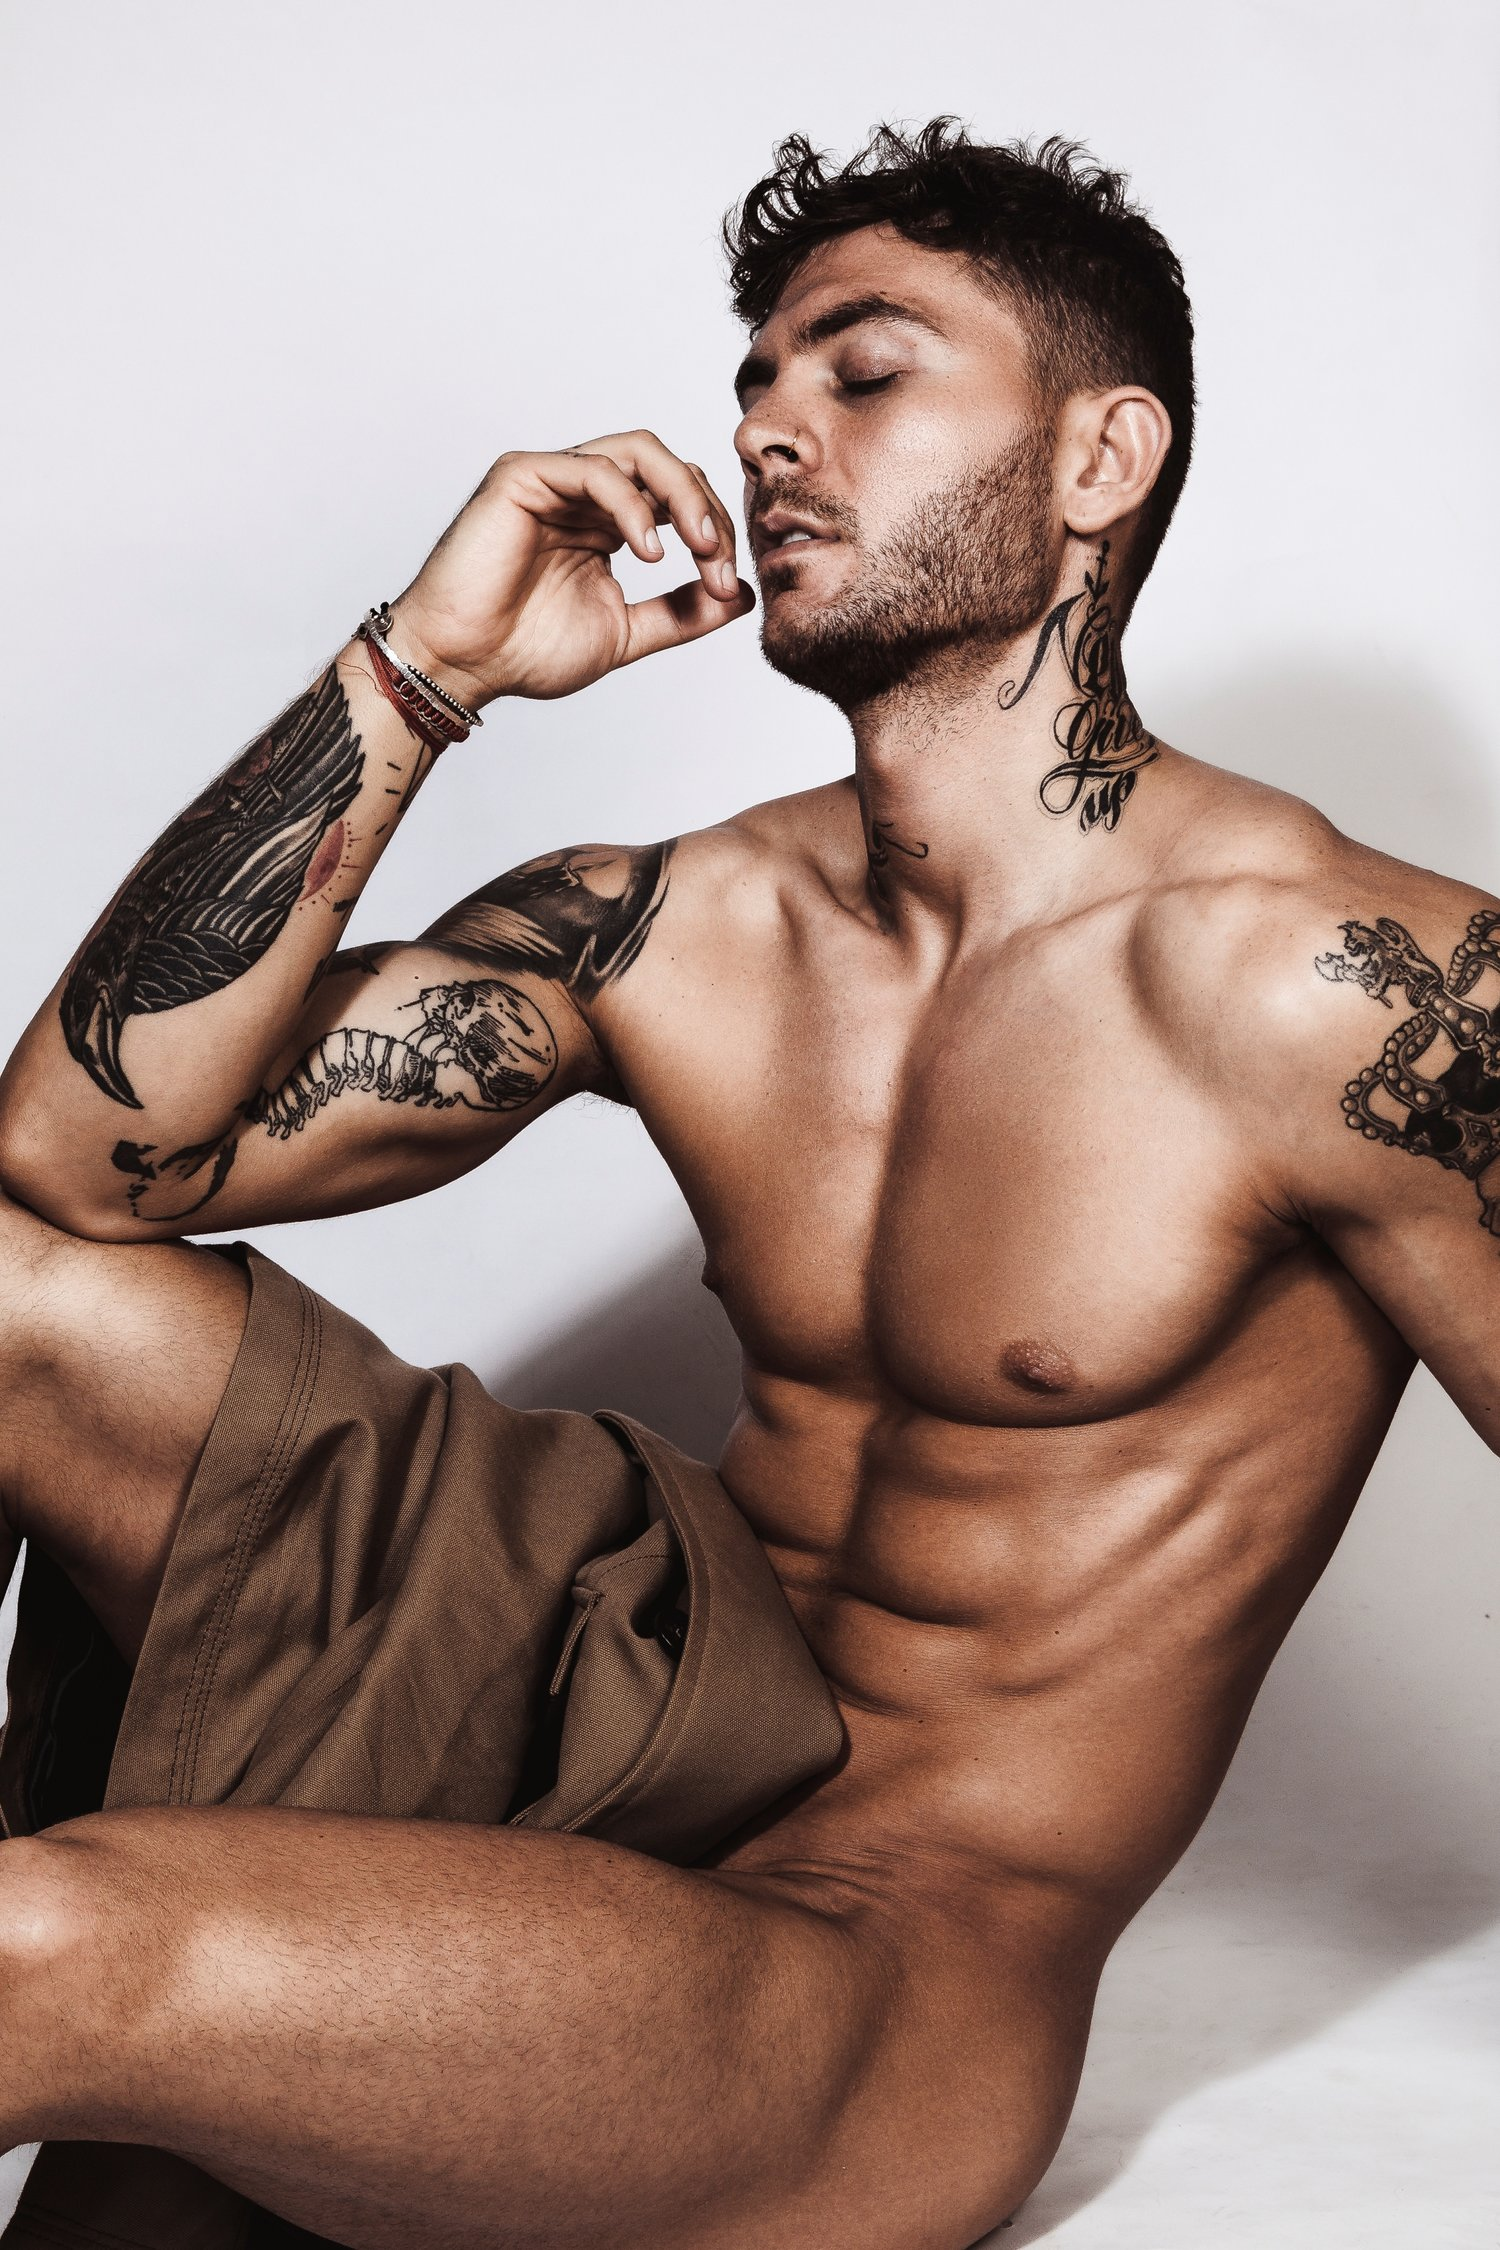 inked stud panayiotis karagianis is a knockout wearing